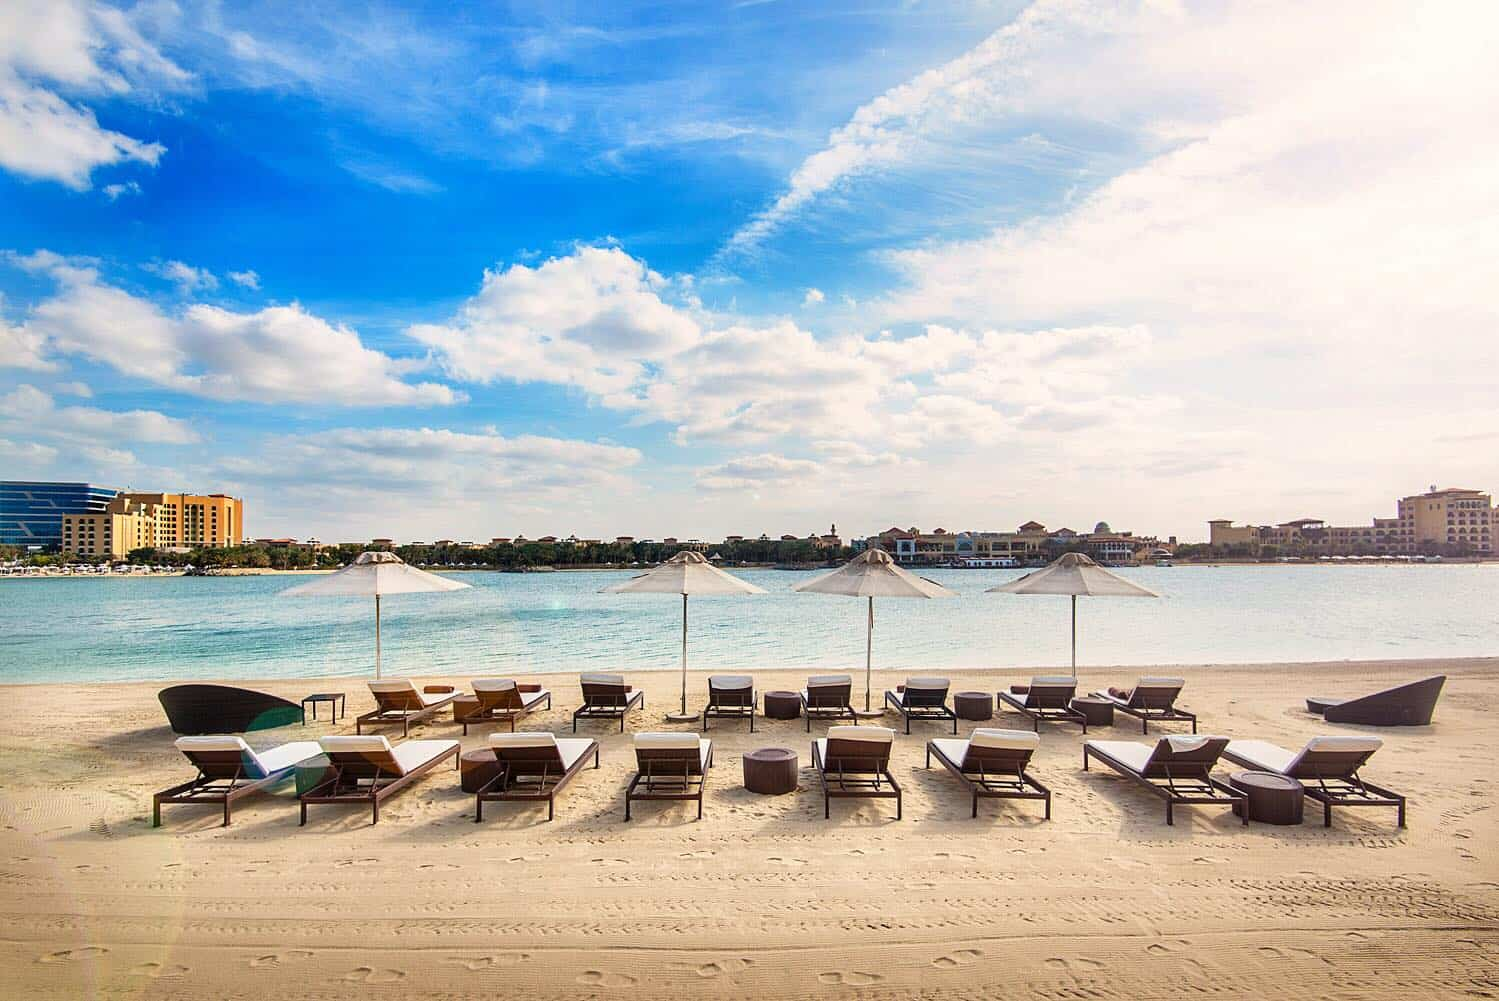 Ritz carlton grand canal abu dhabi beach